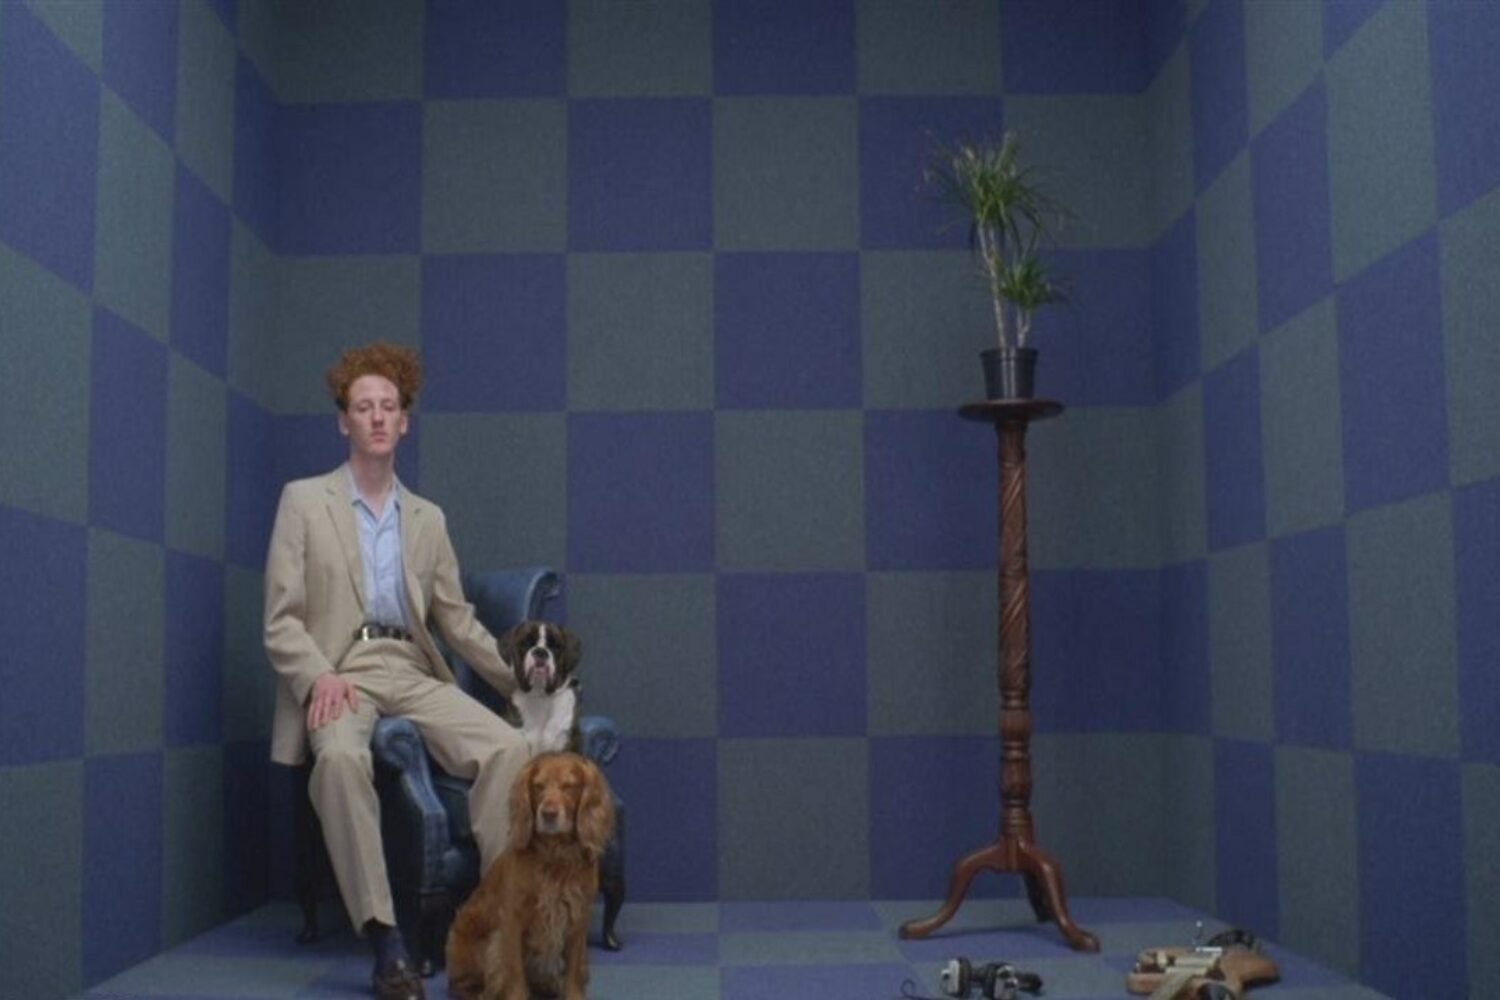 Willie J Healey hangs out in the video for 'People and Their Dogs'